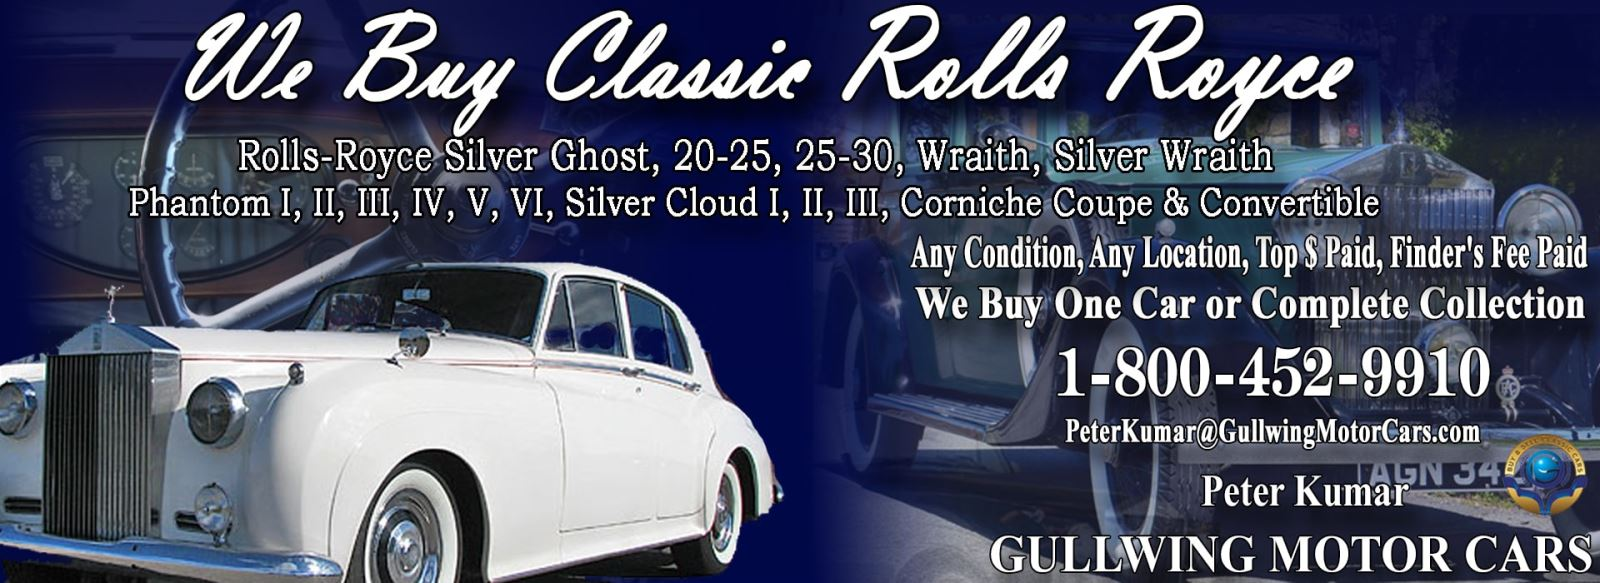 Classic Rolls Royce for sale, we buy vintage Rolls Royce. Call Peter Kumar. Gullwing Motor